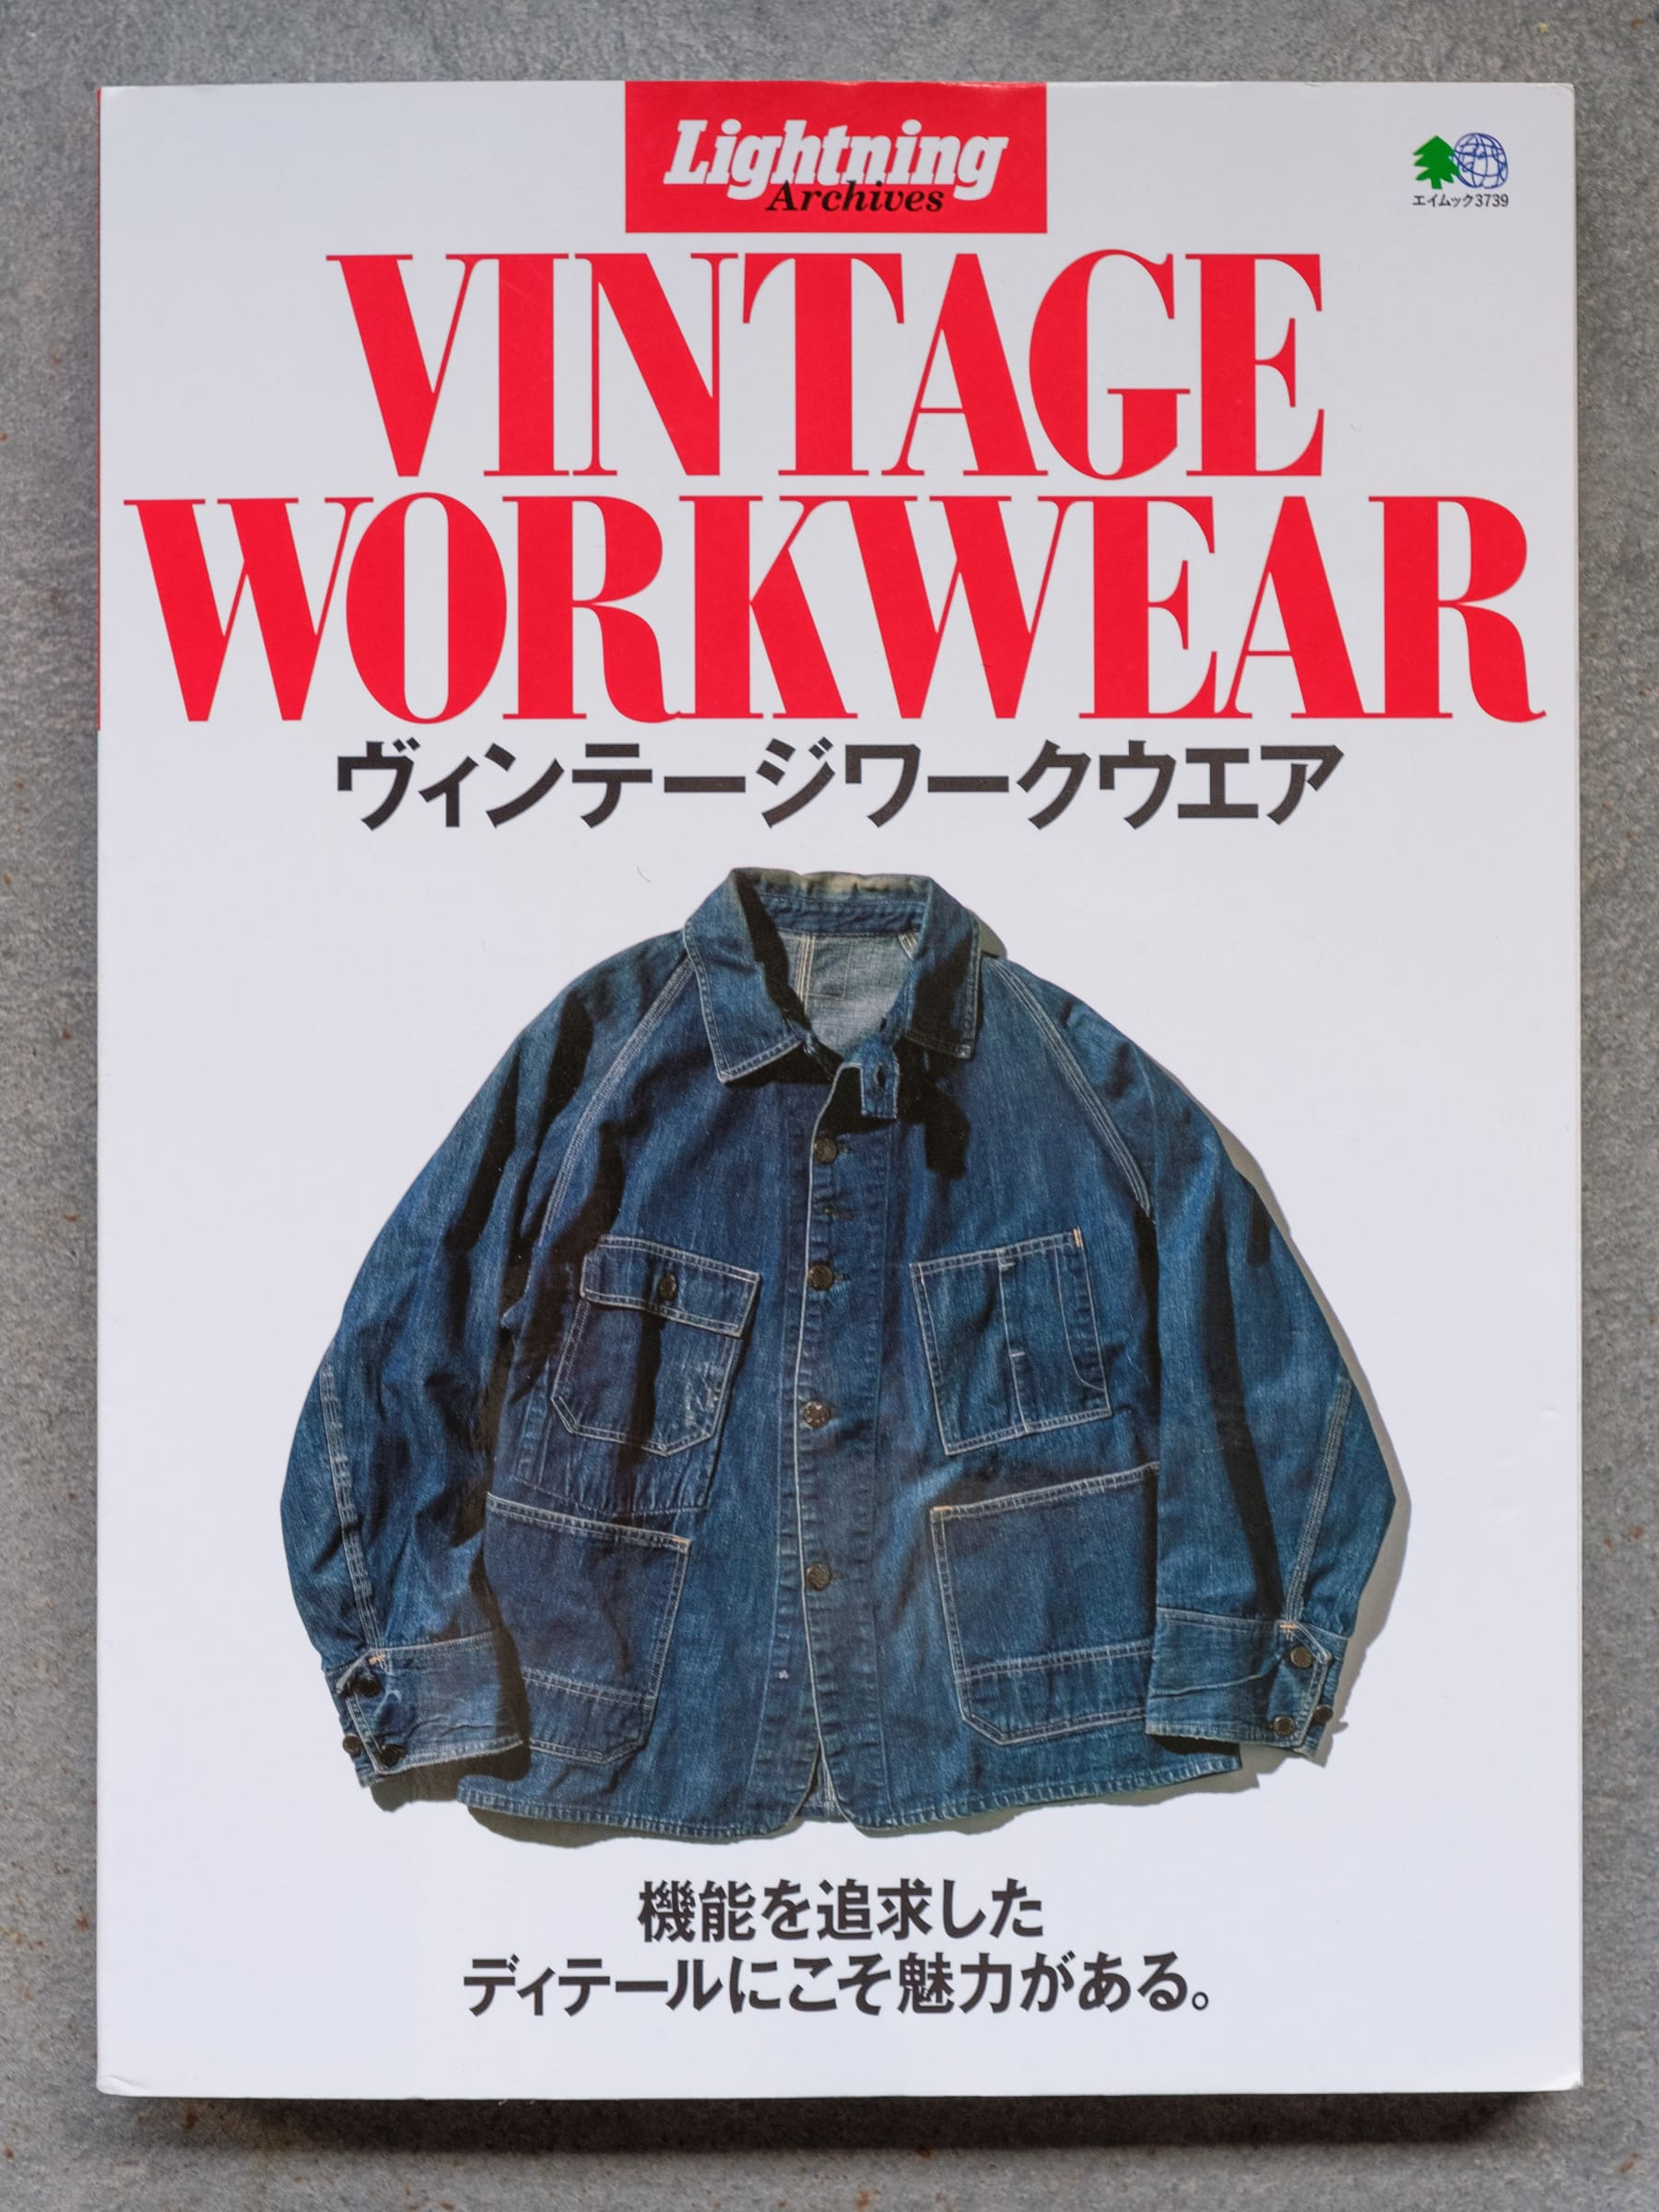 borasification blog mode homme workwear - Lightning Archives Vintage workwear